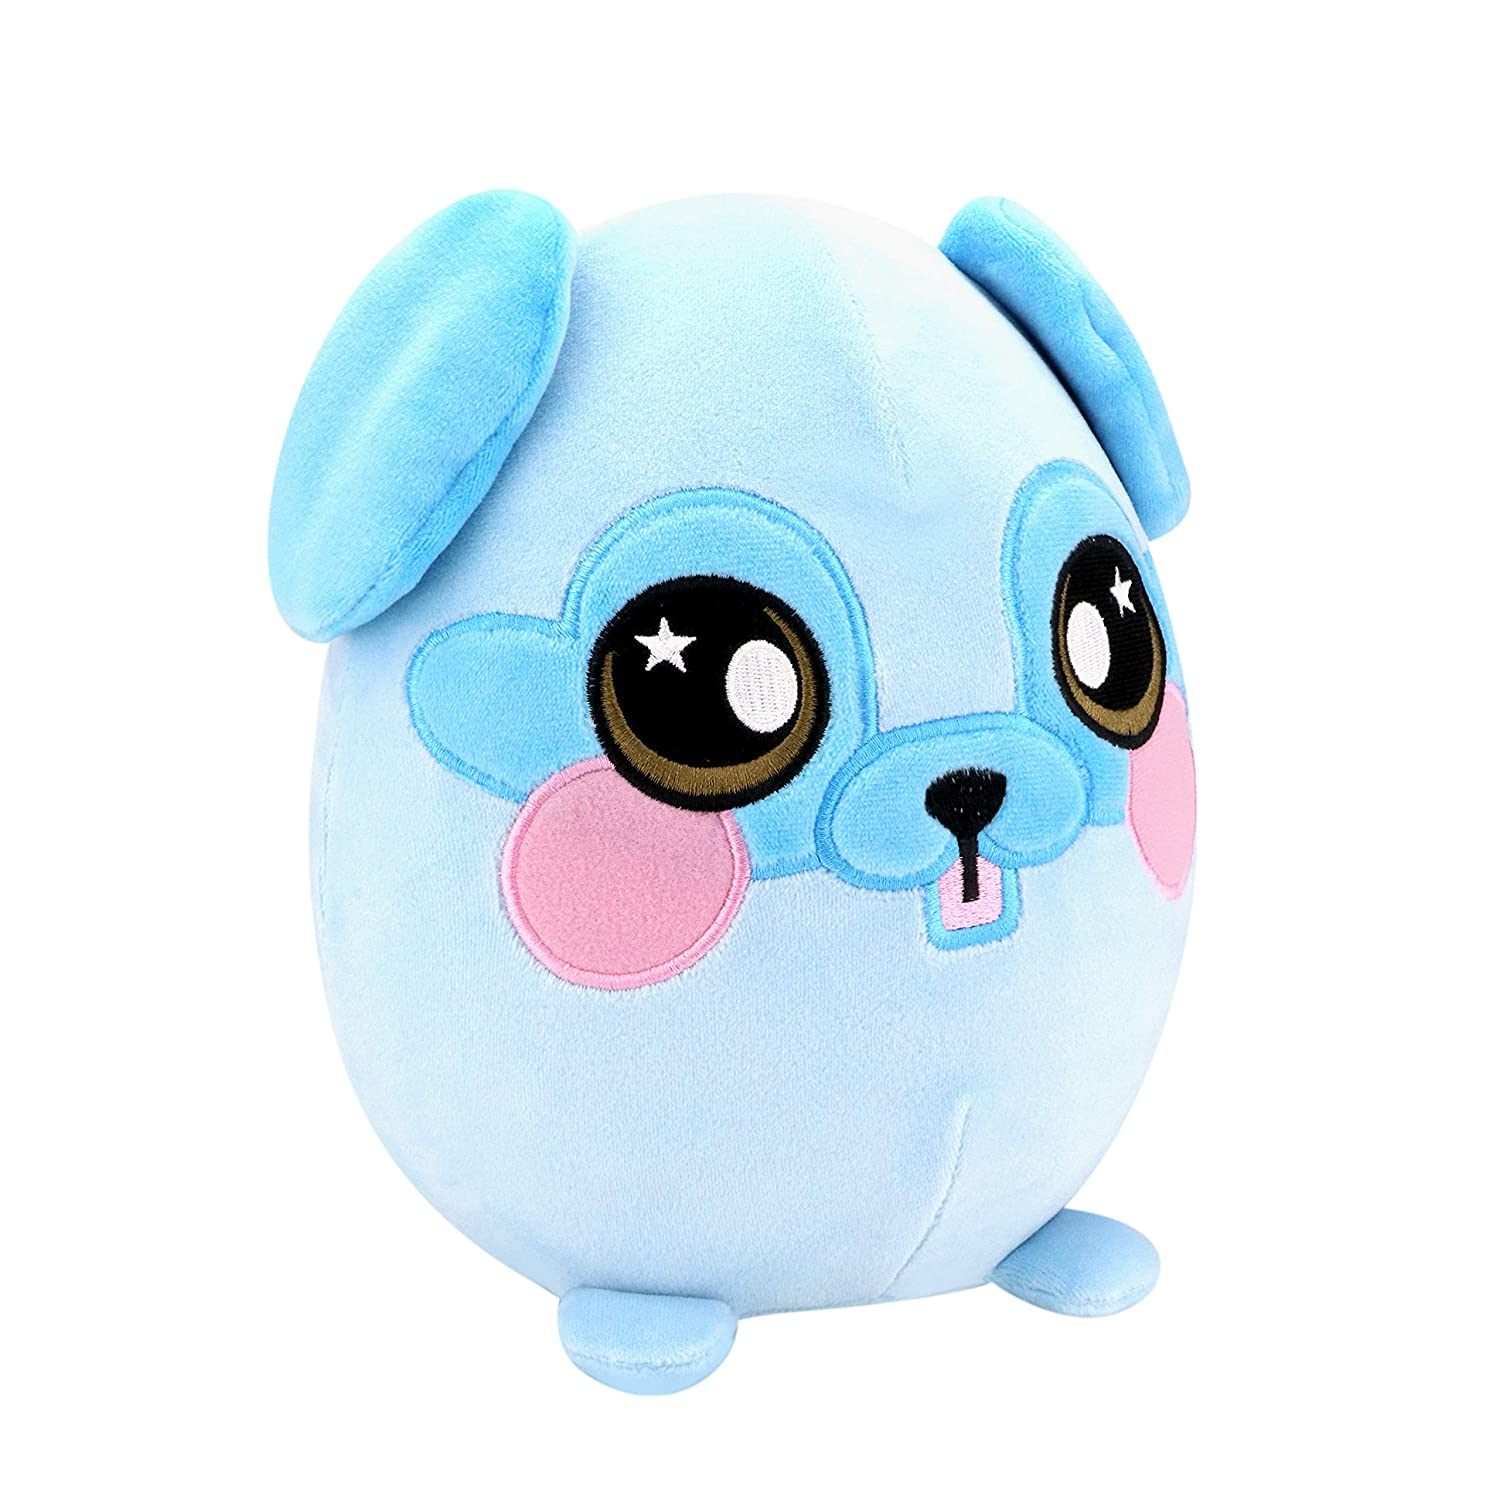 Squeezamals BH31712.4300 a Large Slow Rise, Cuddly, Soft, Squshie, Sweet Scented Plush Animal Toy, Blue